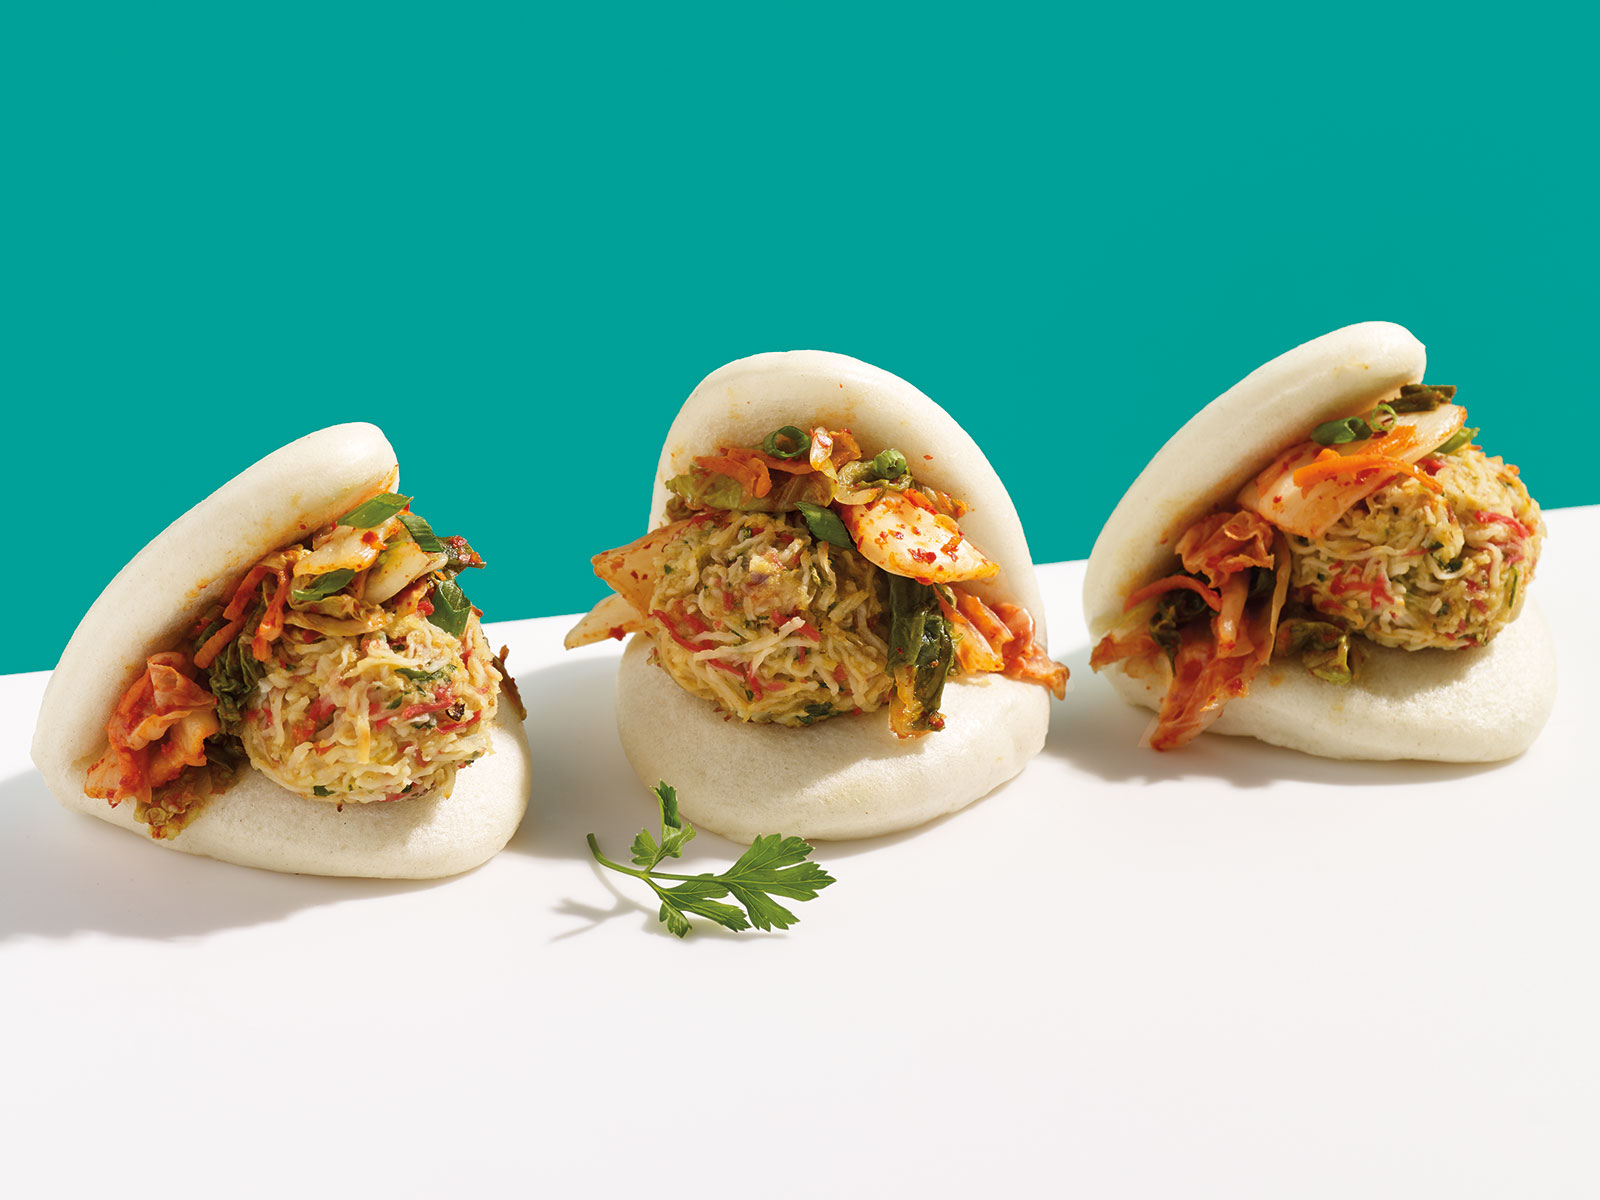 SEA LEGS® Double Happiness Bao Sliders